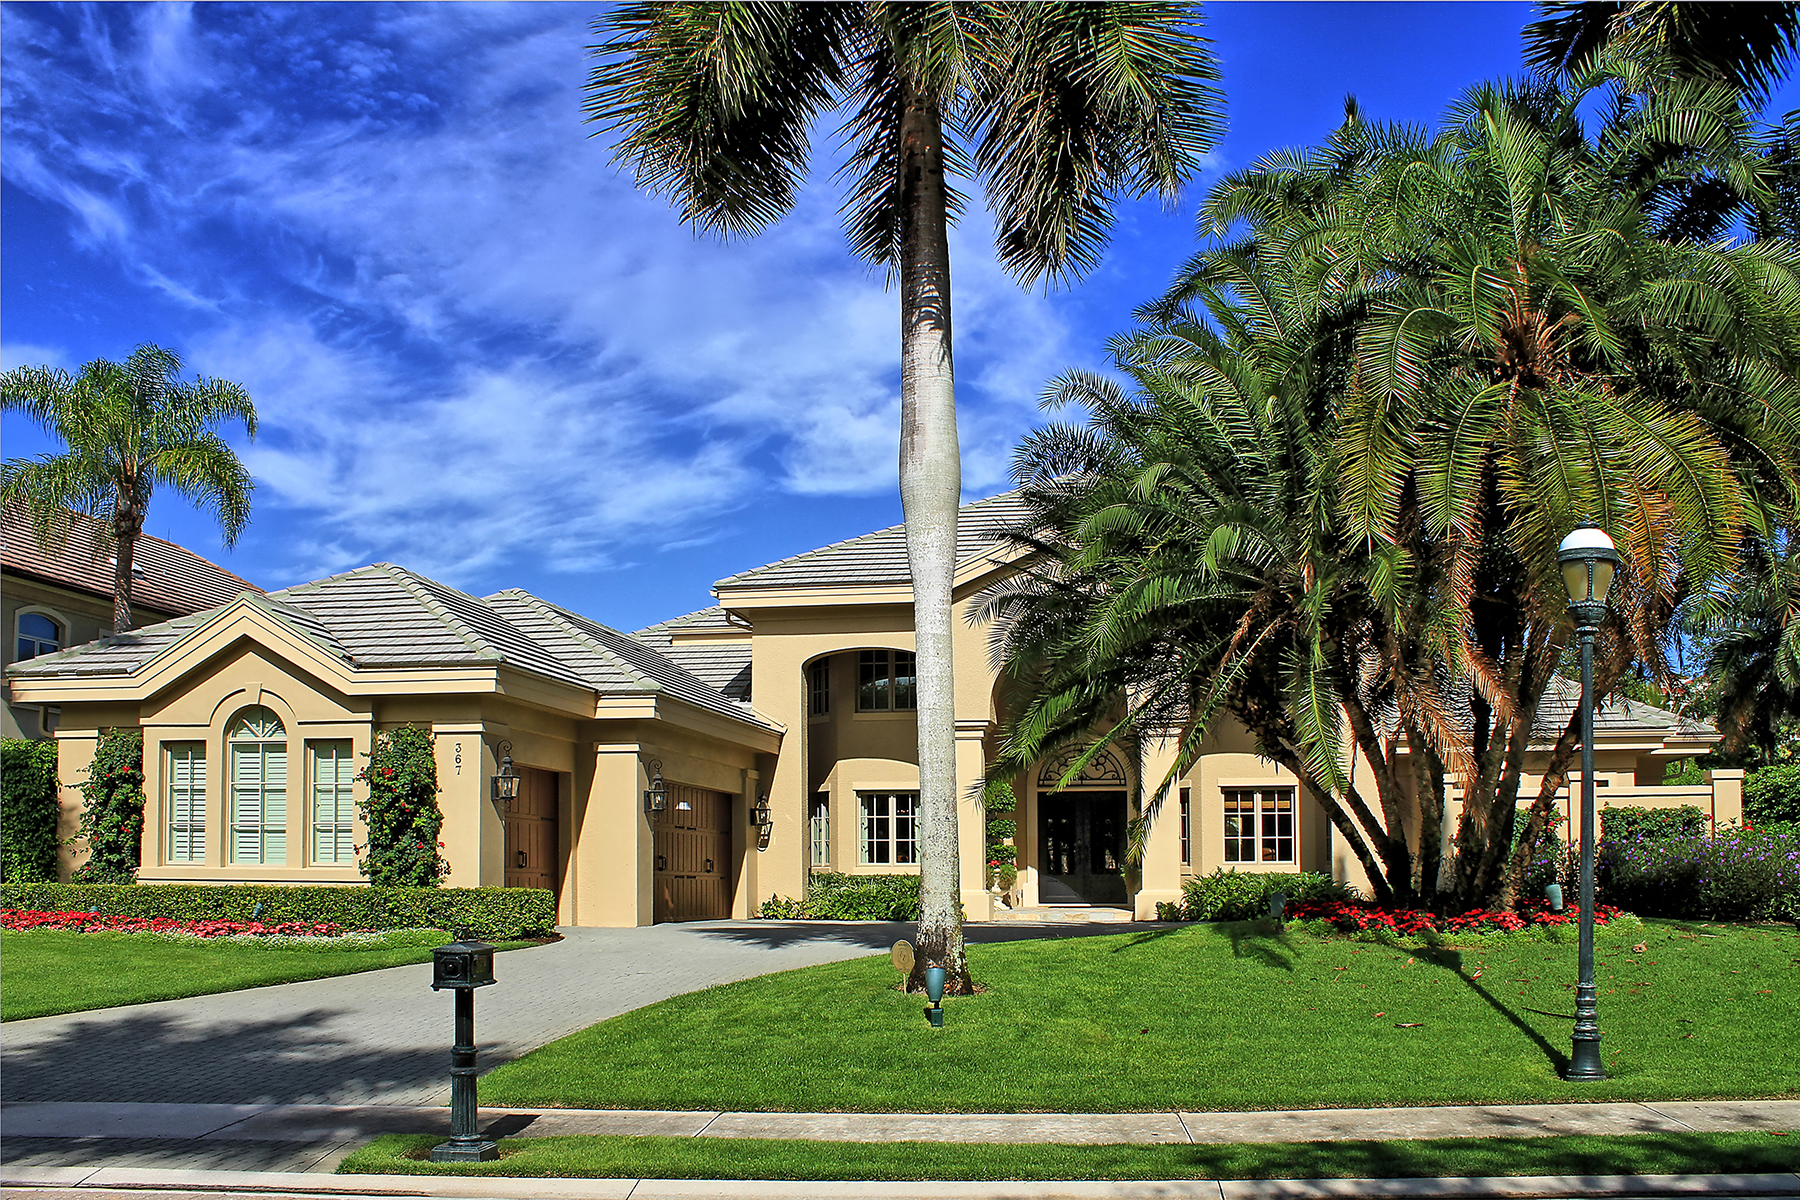 Property For Sale at PELICAN BAY - BAY COLONY SHORES